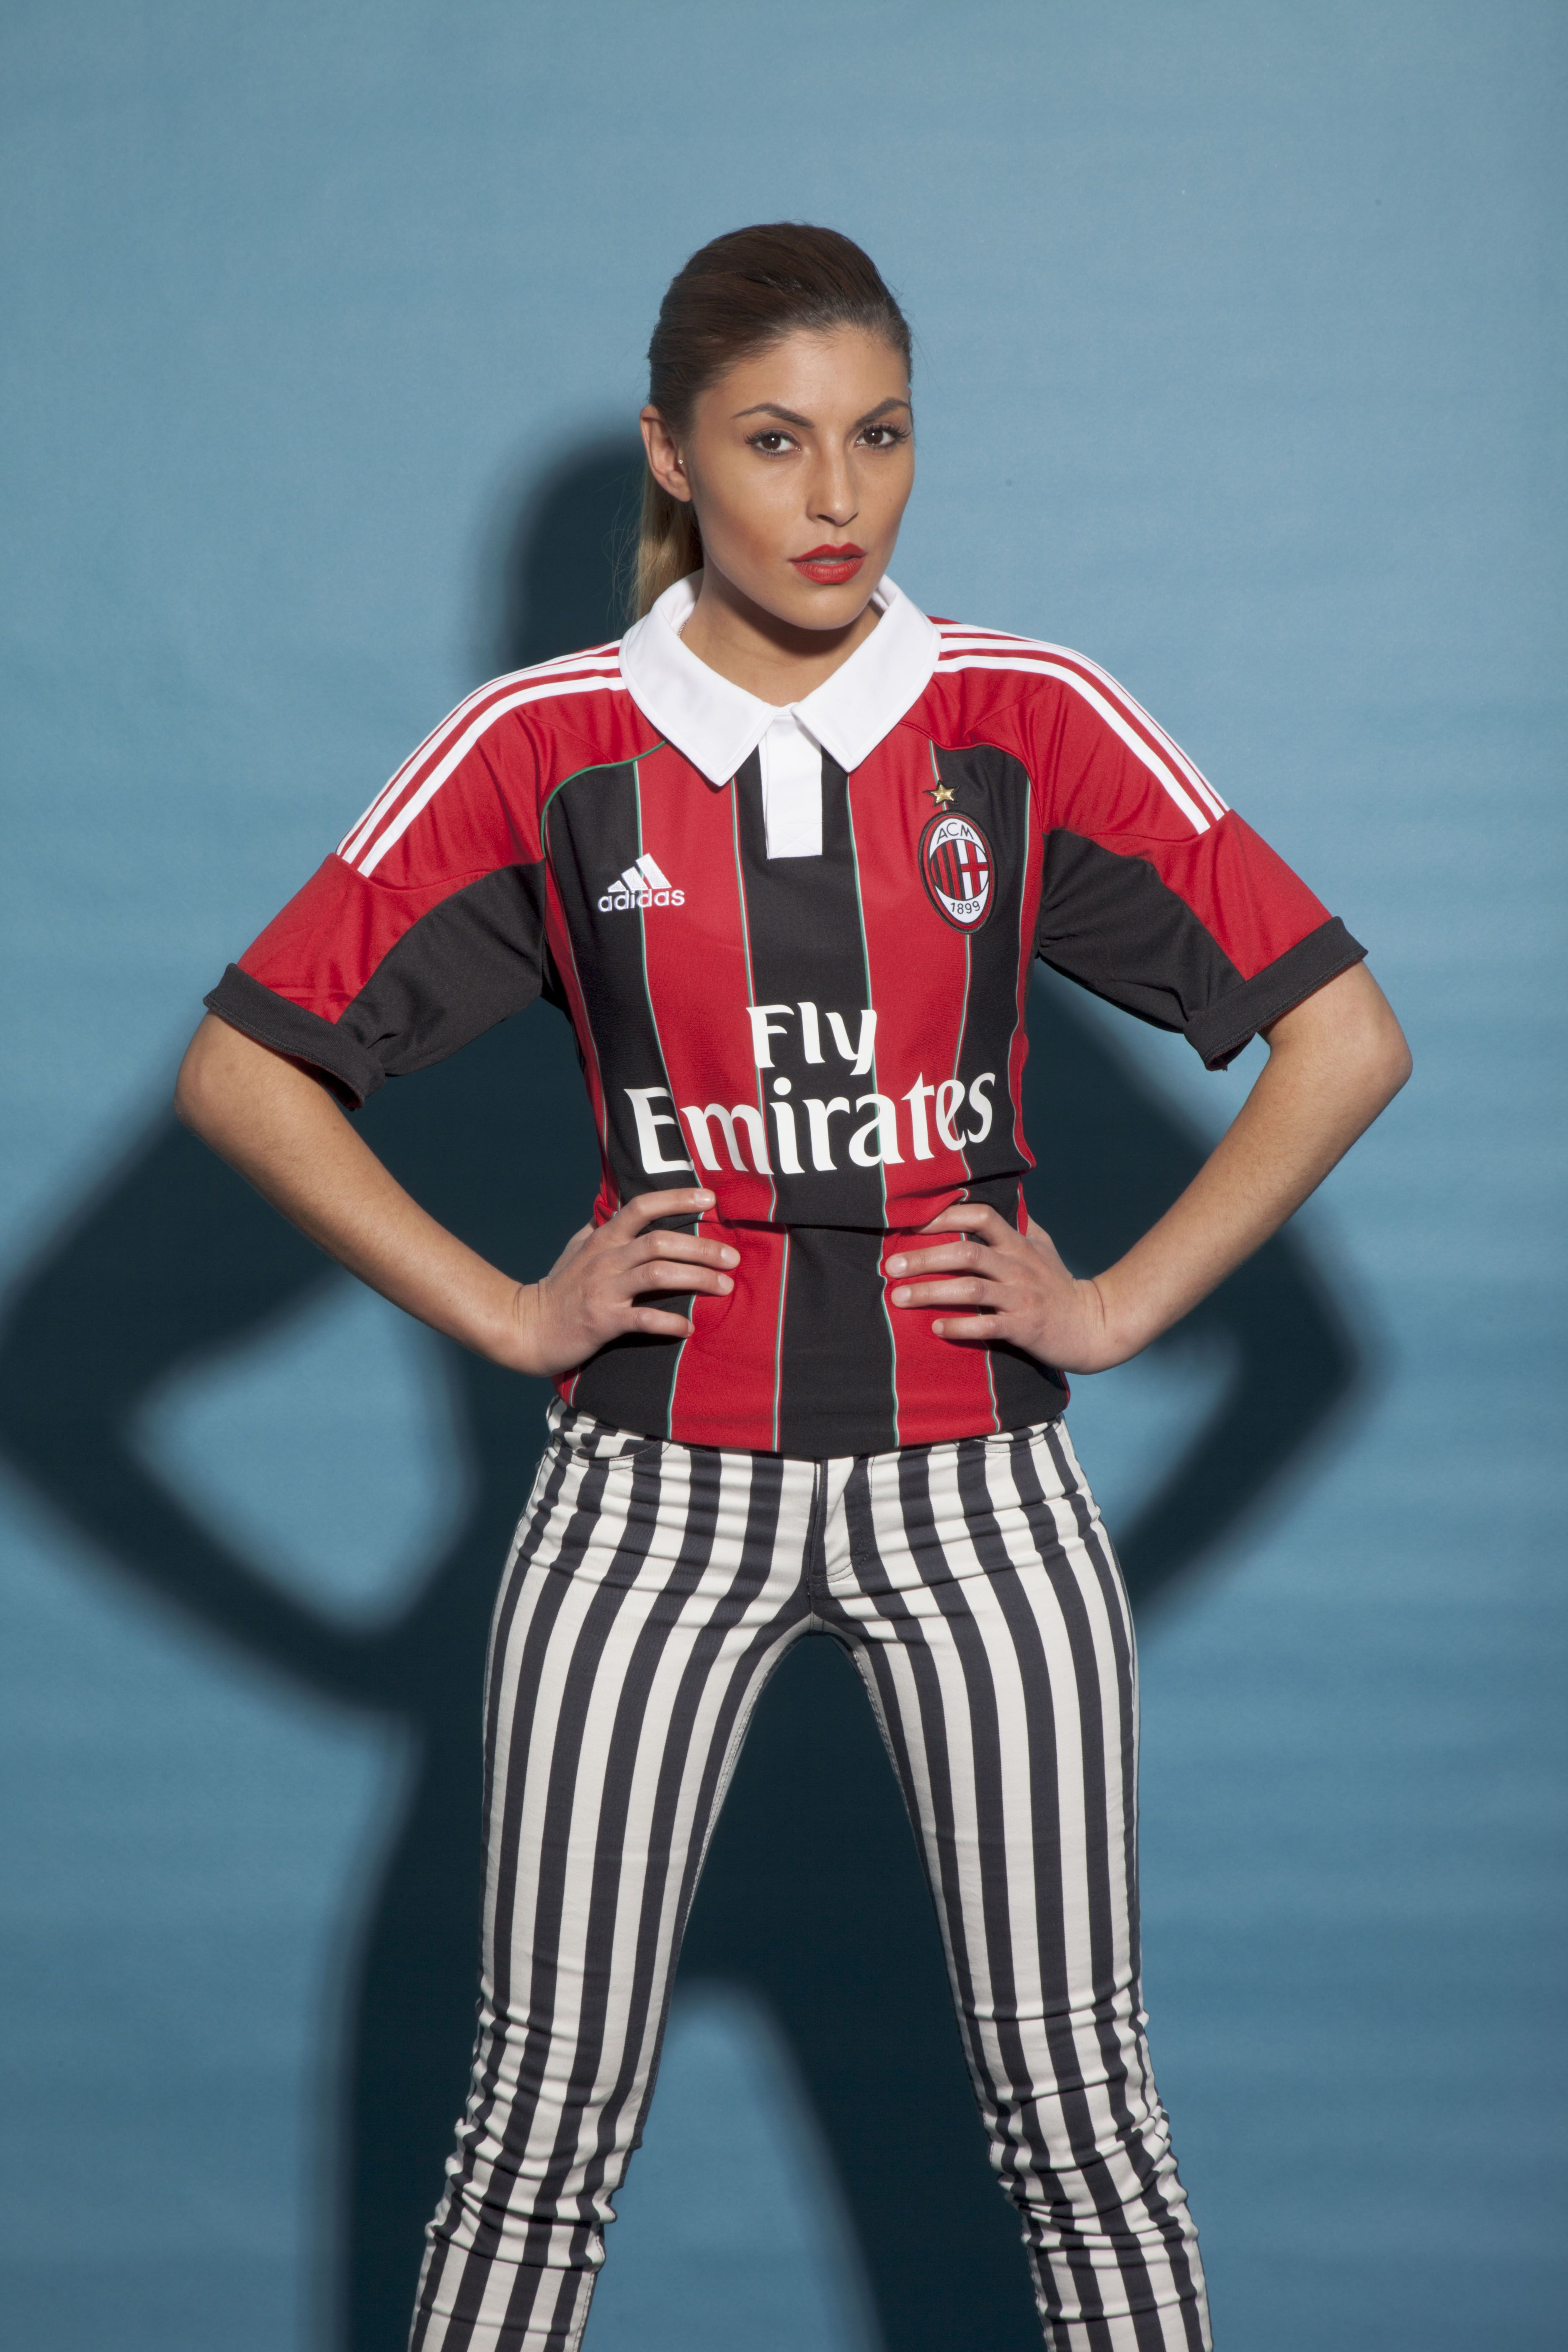 1b23bbd7cd7b The AC Milan girl is ready to. Hands in the side and a determined attitude.